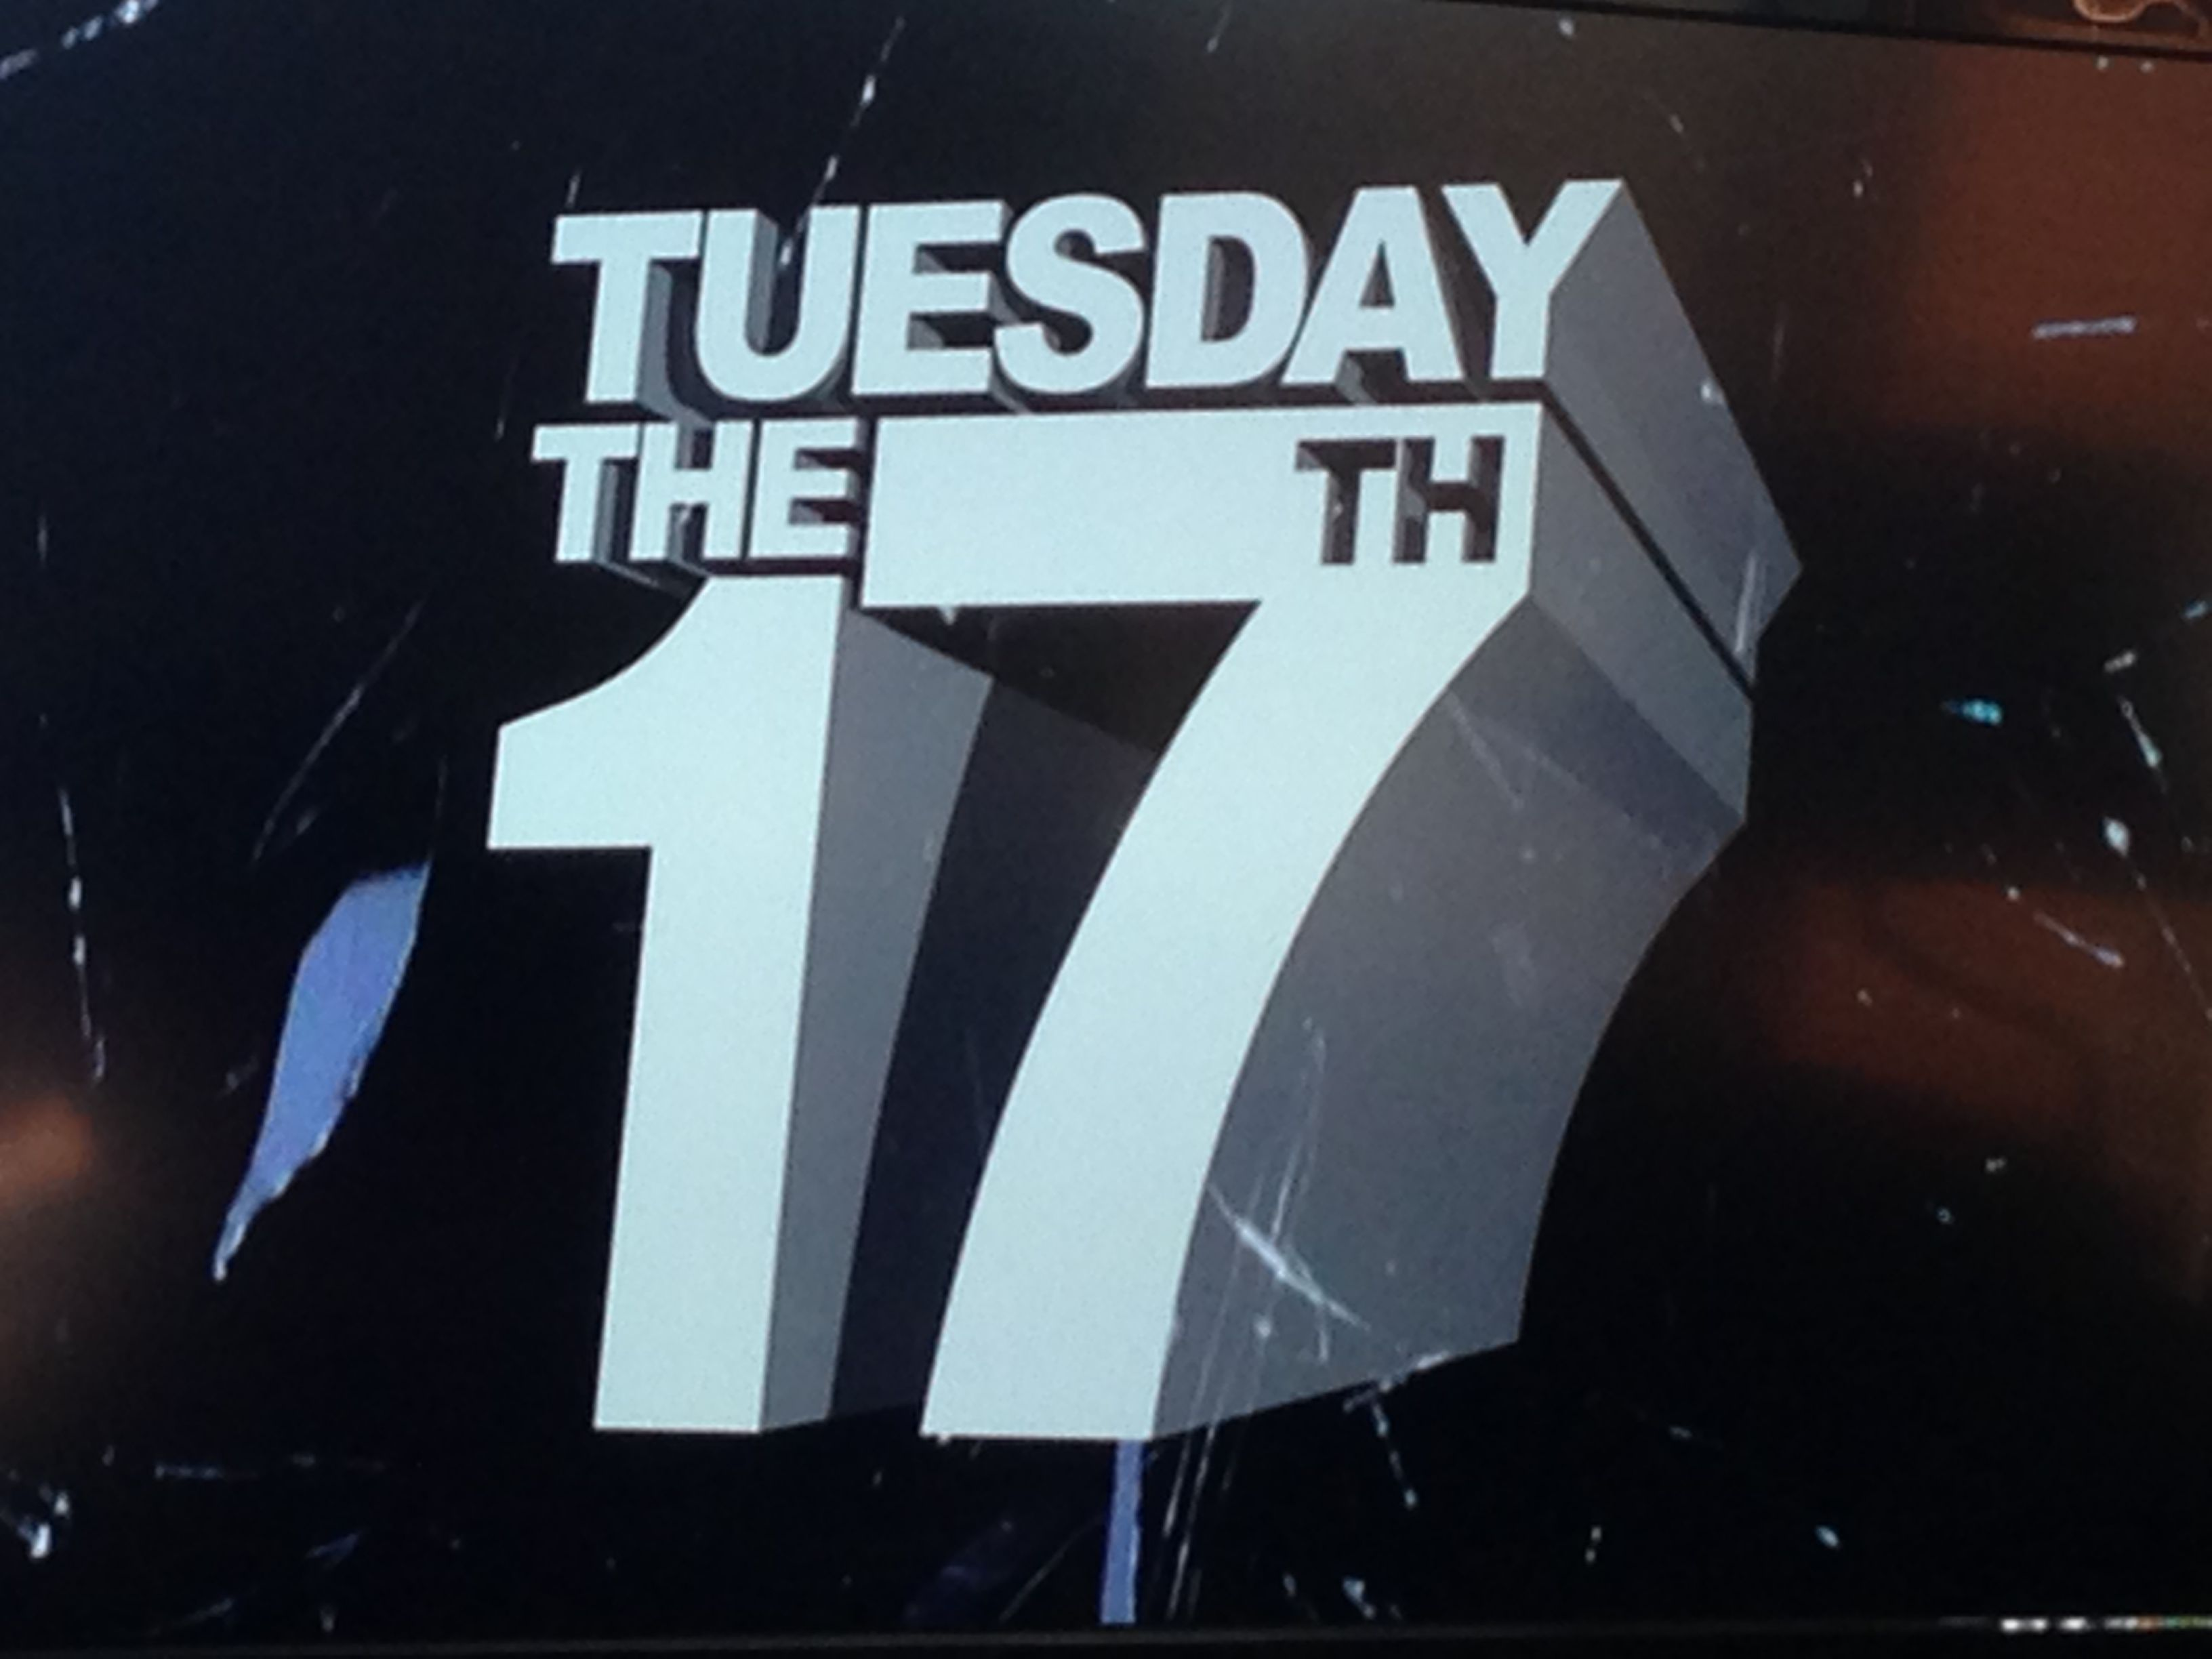 Tuesday the 17th Psychos!